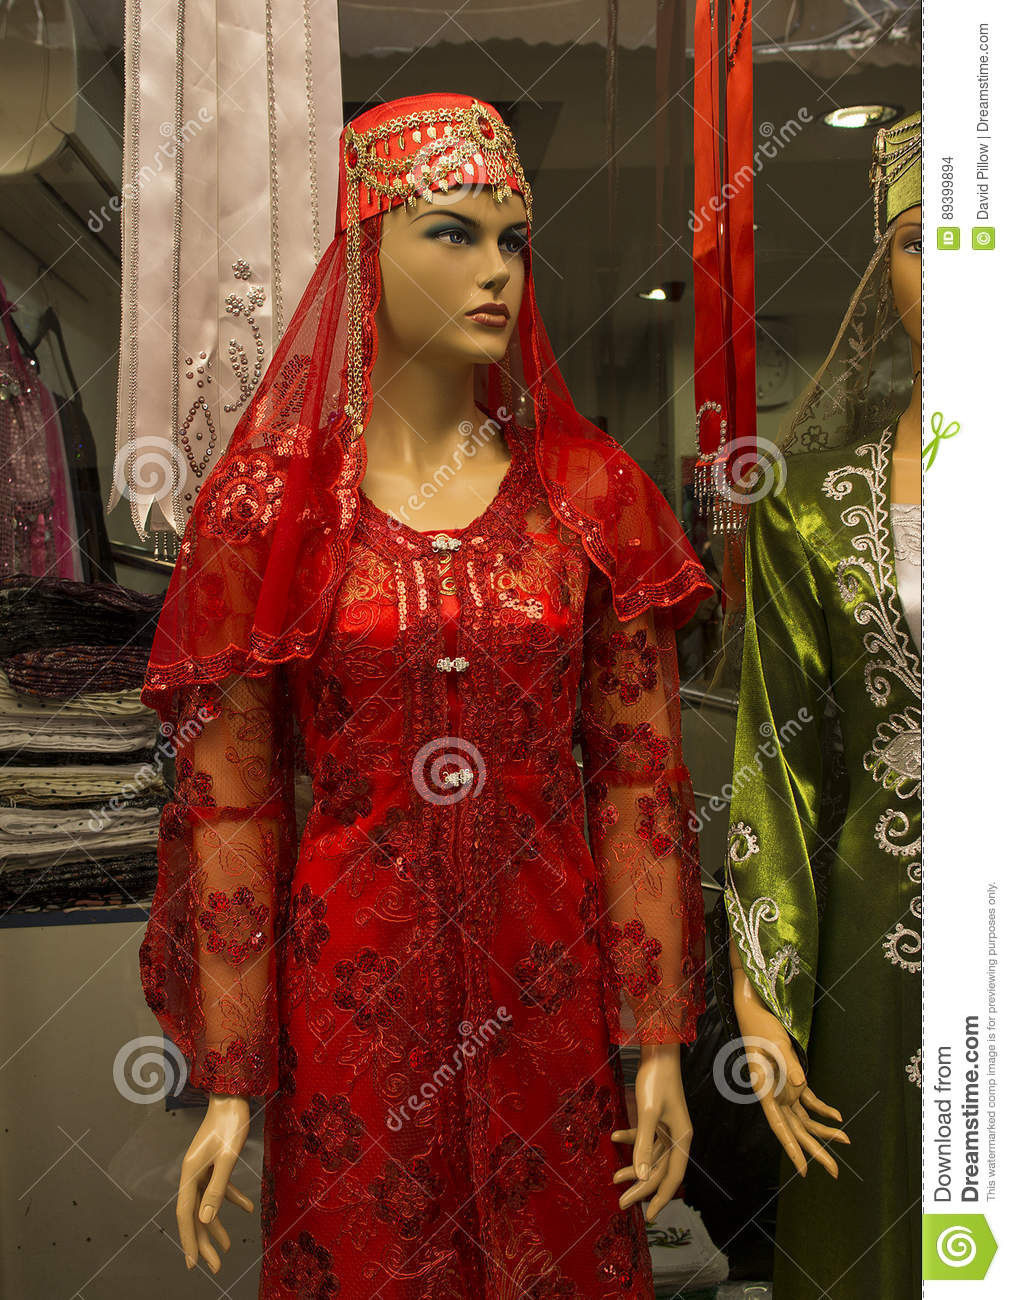 Formal Cool Henna Abend Rotes Kleid Vertrieb17 Leicht Henna Abend Rotes Kleid Spezialgebiet